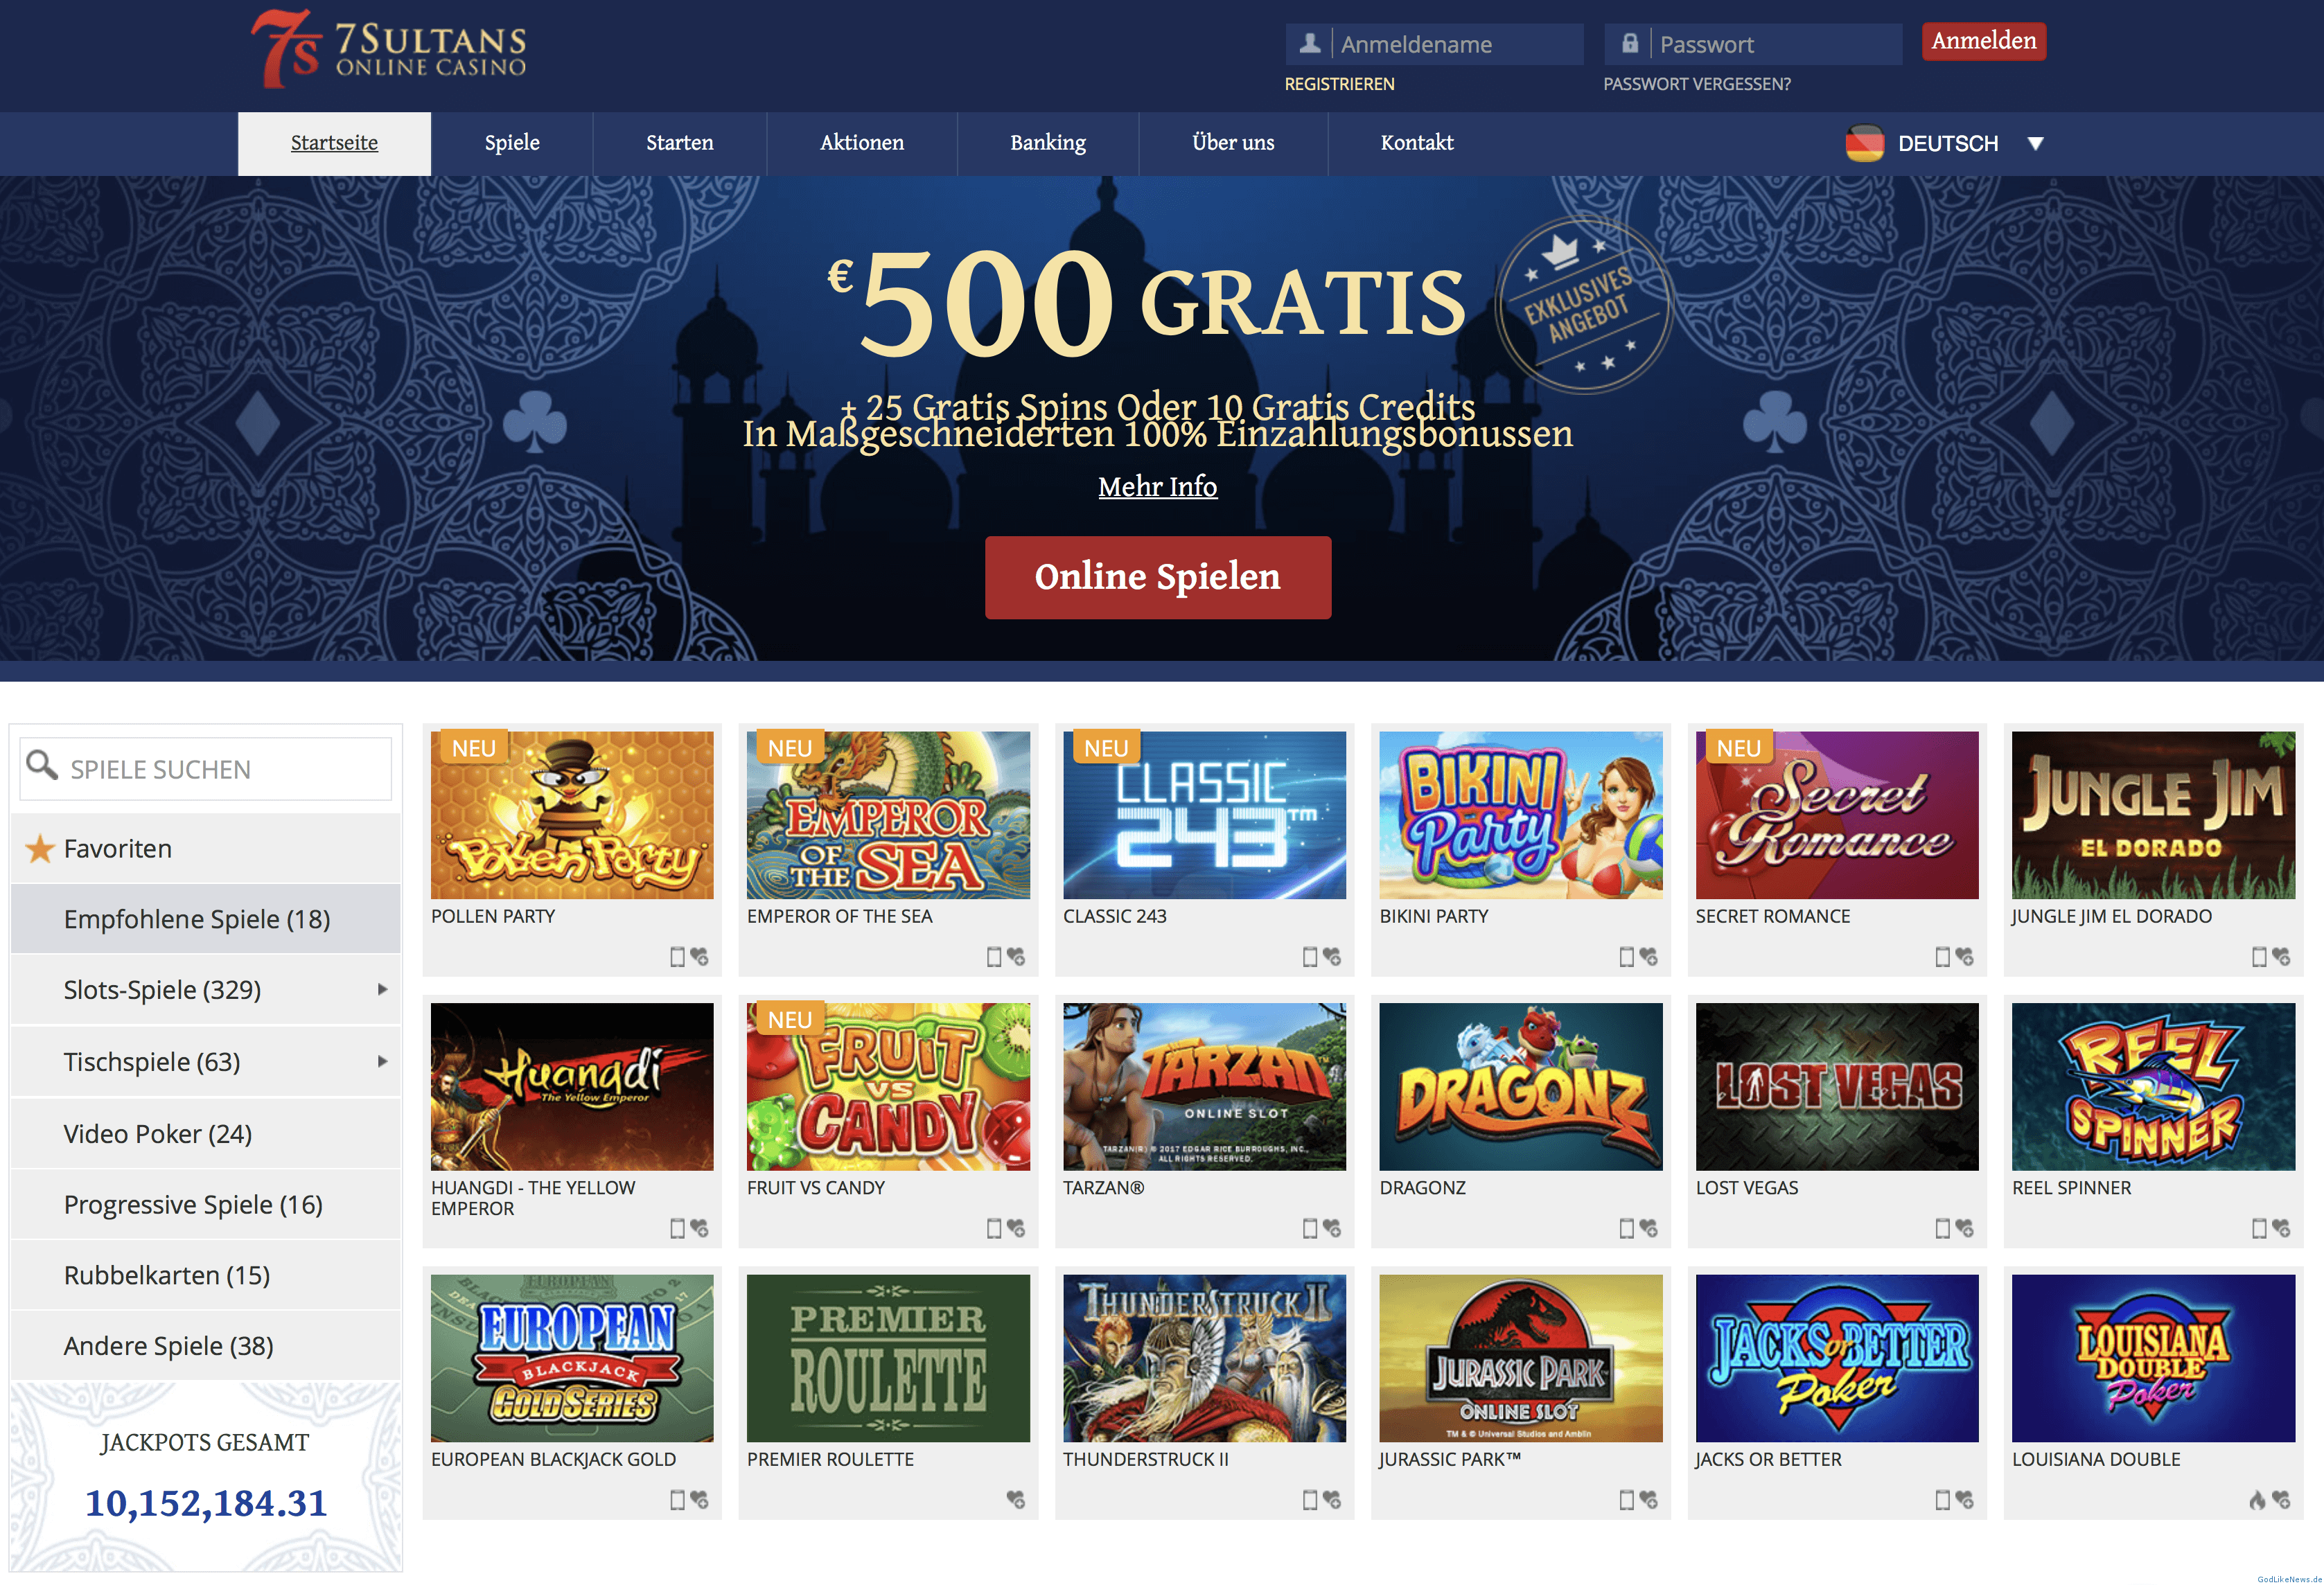 The Basics About 7Sultans Online Casino